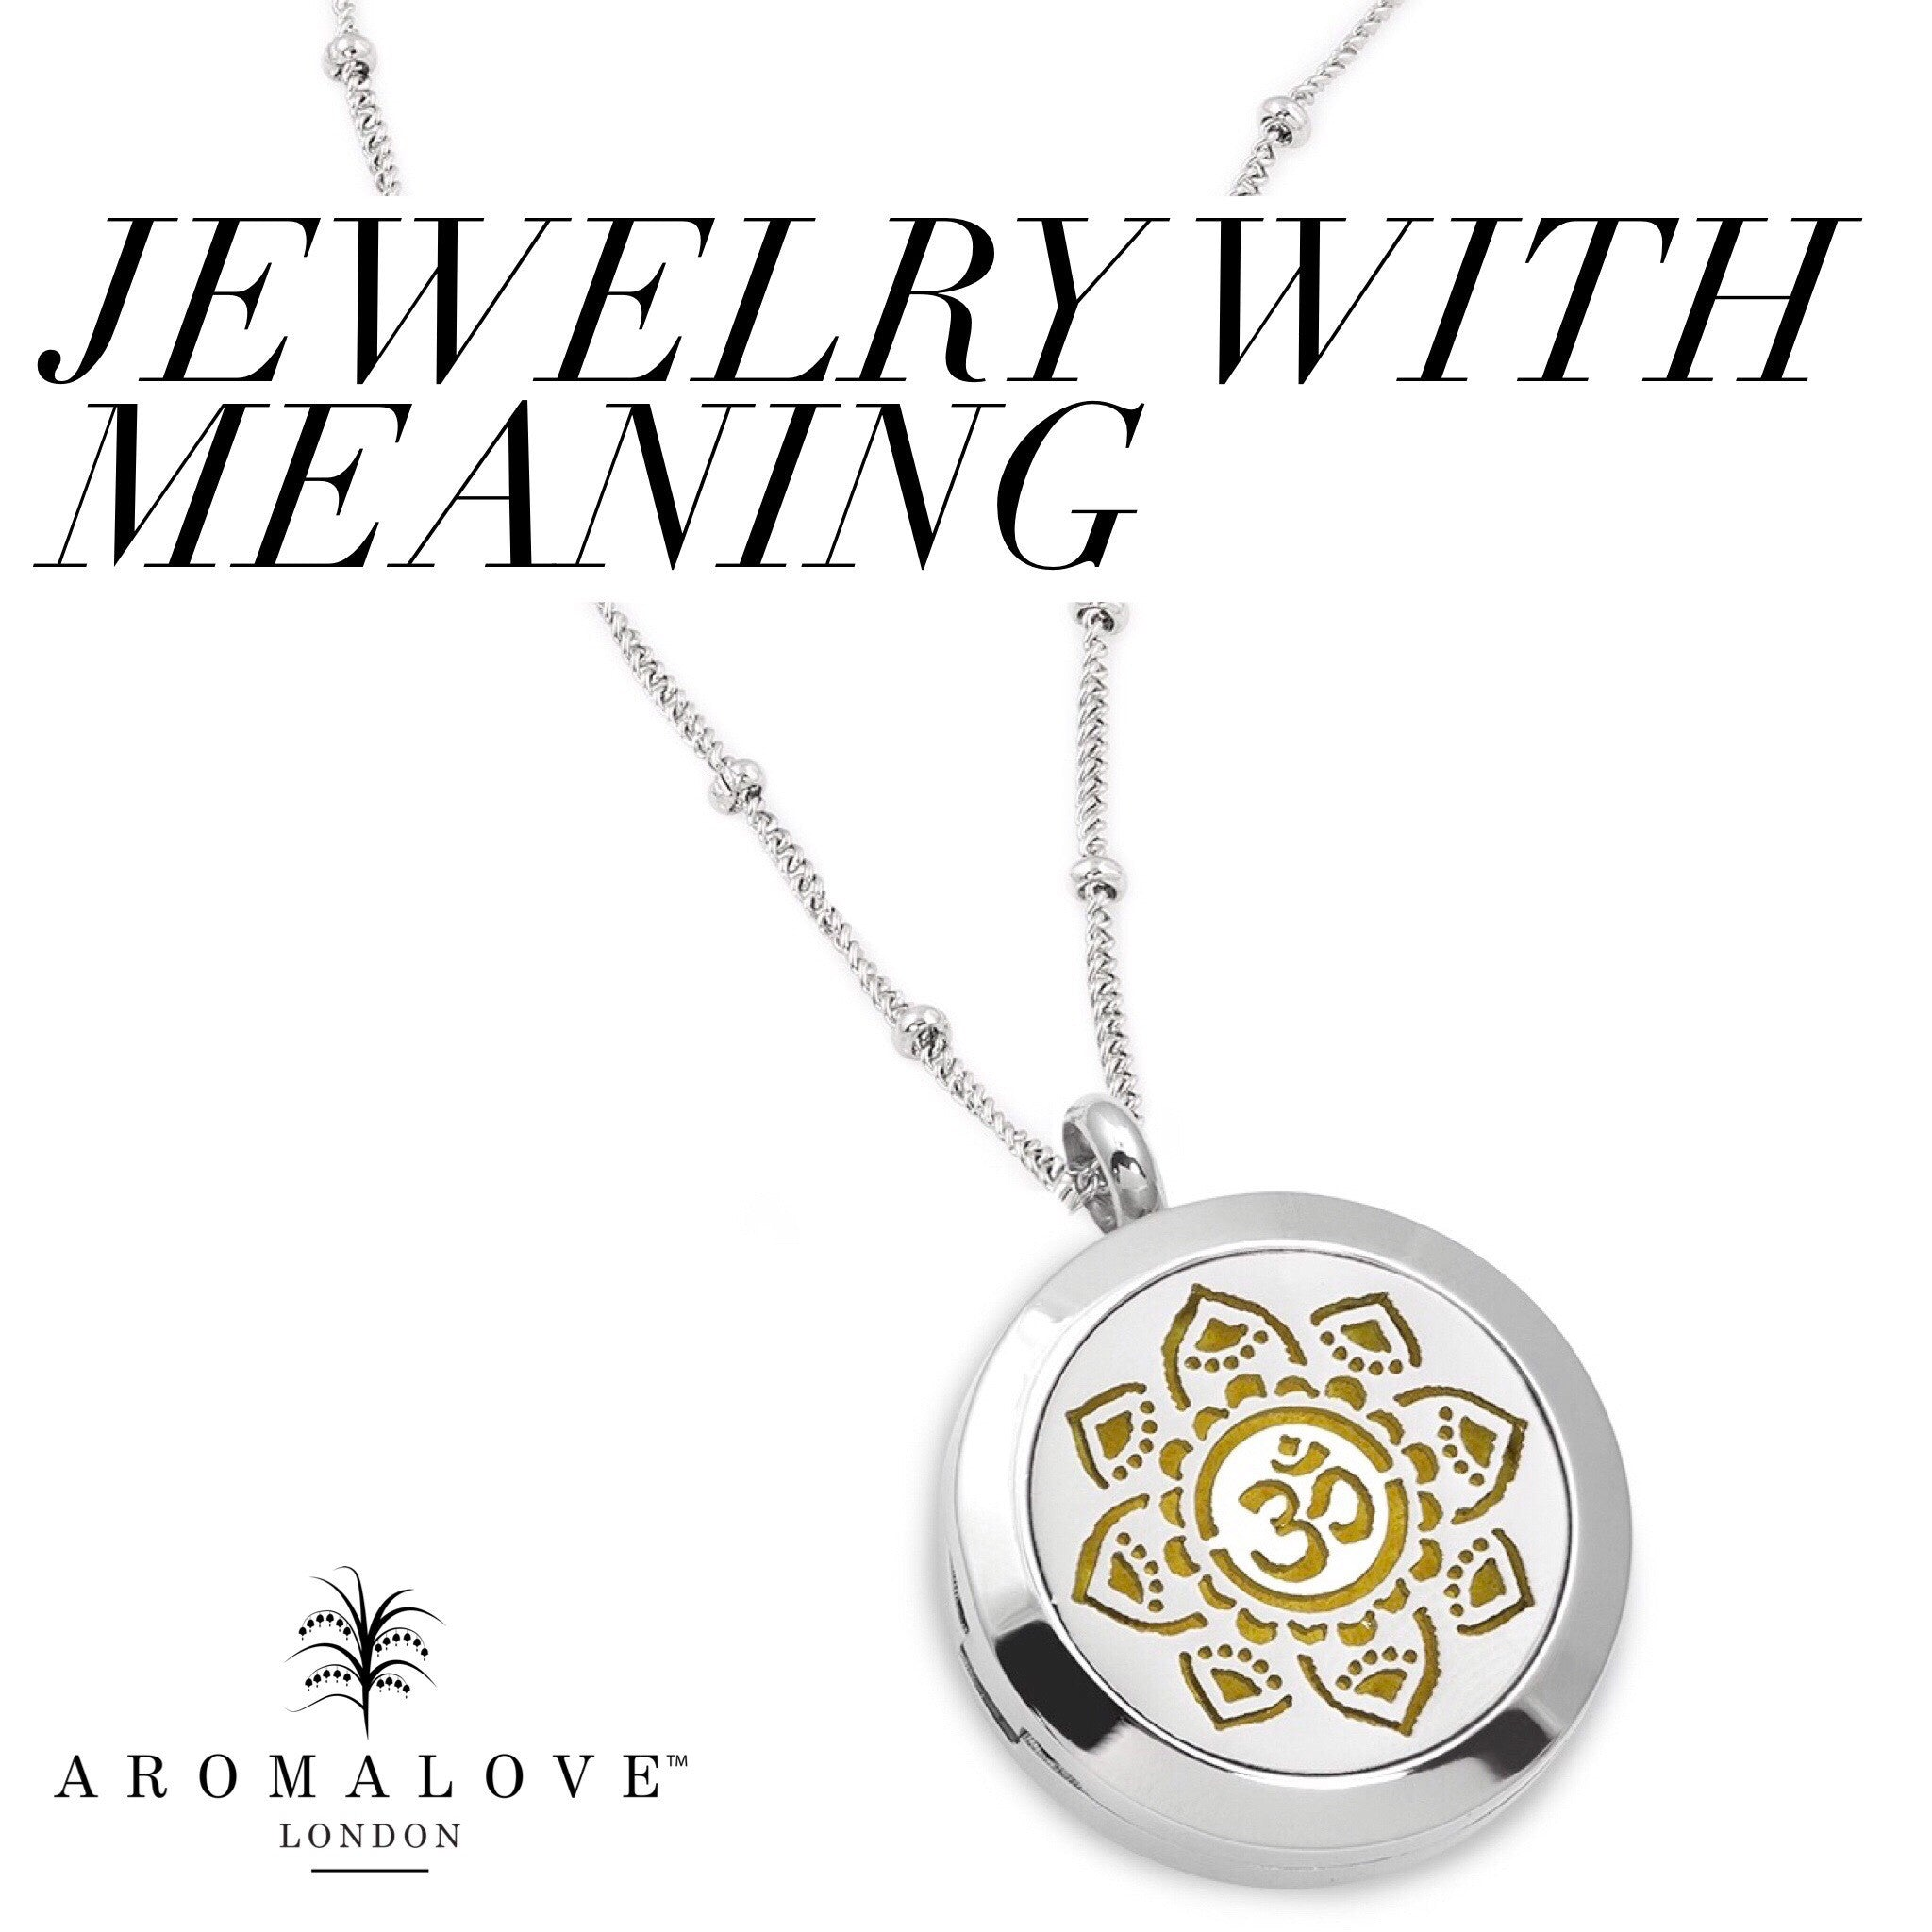 Jewellery with meaning aromalove london jewellery with meaning izmirmasajfo